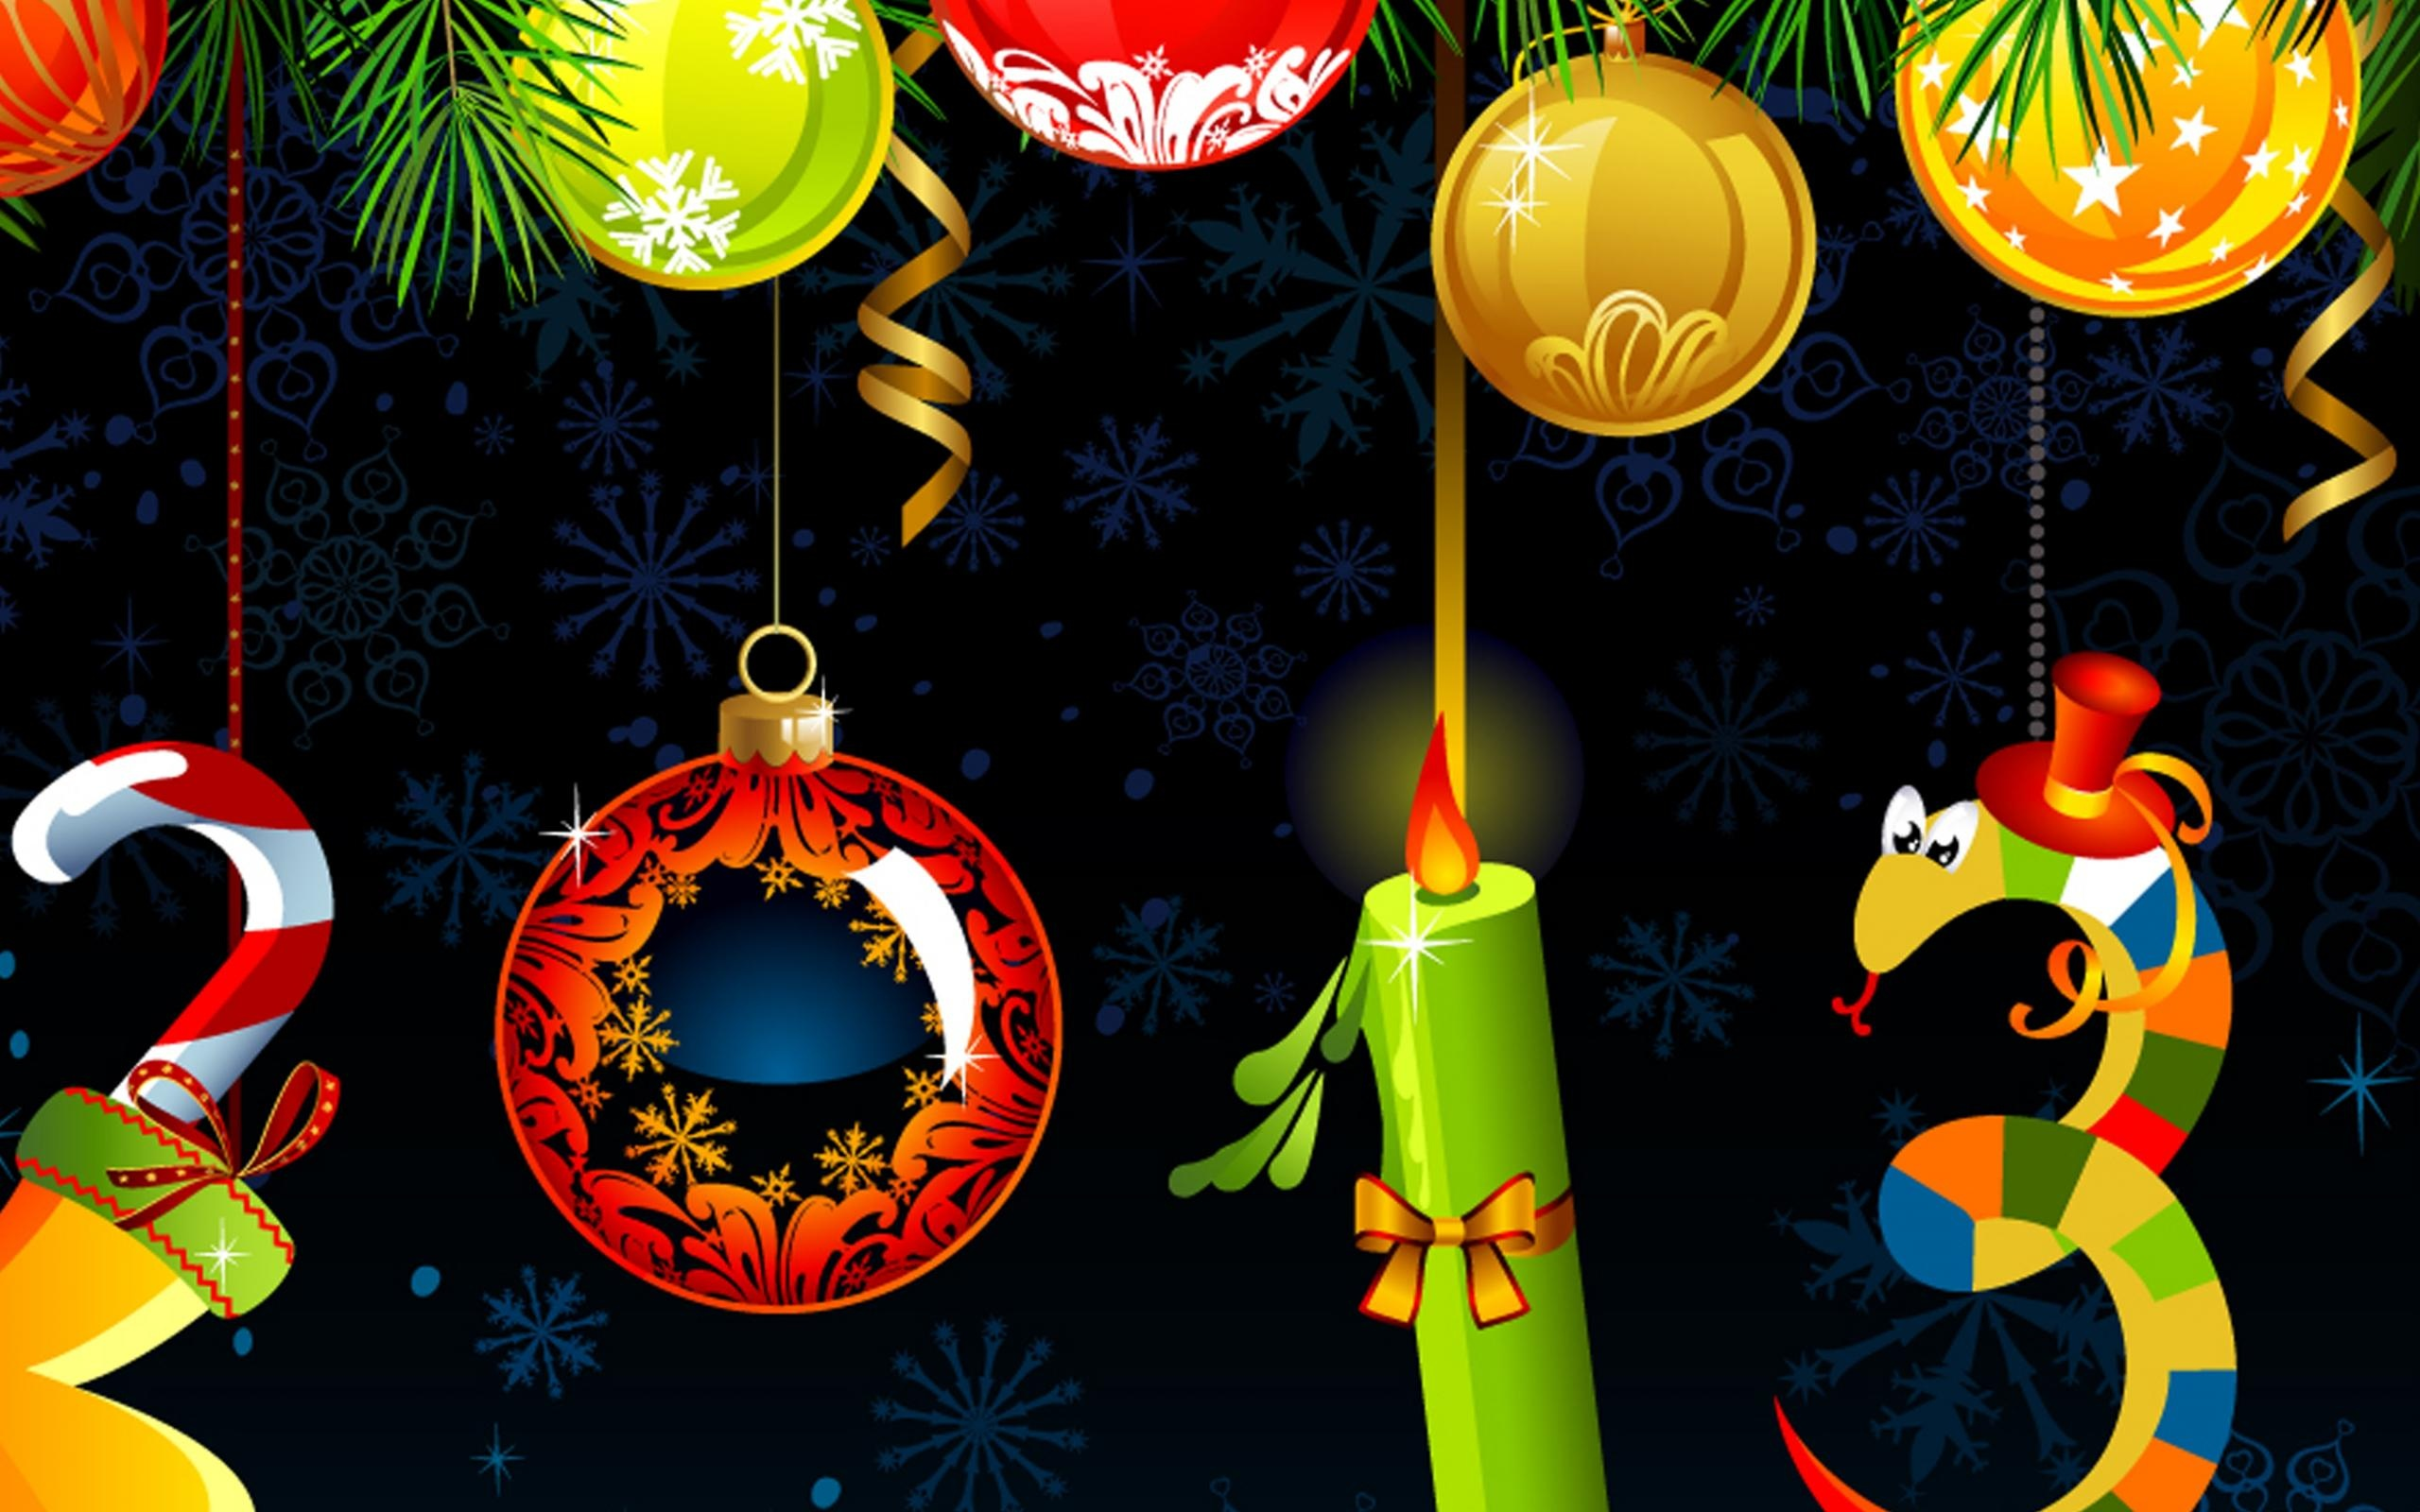 Happy New Year Decorations Wallpapers - 2560x1600 - 655250